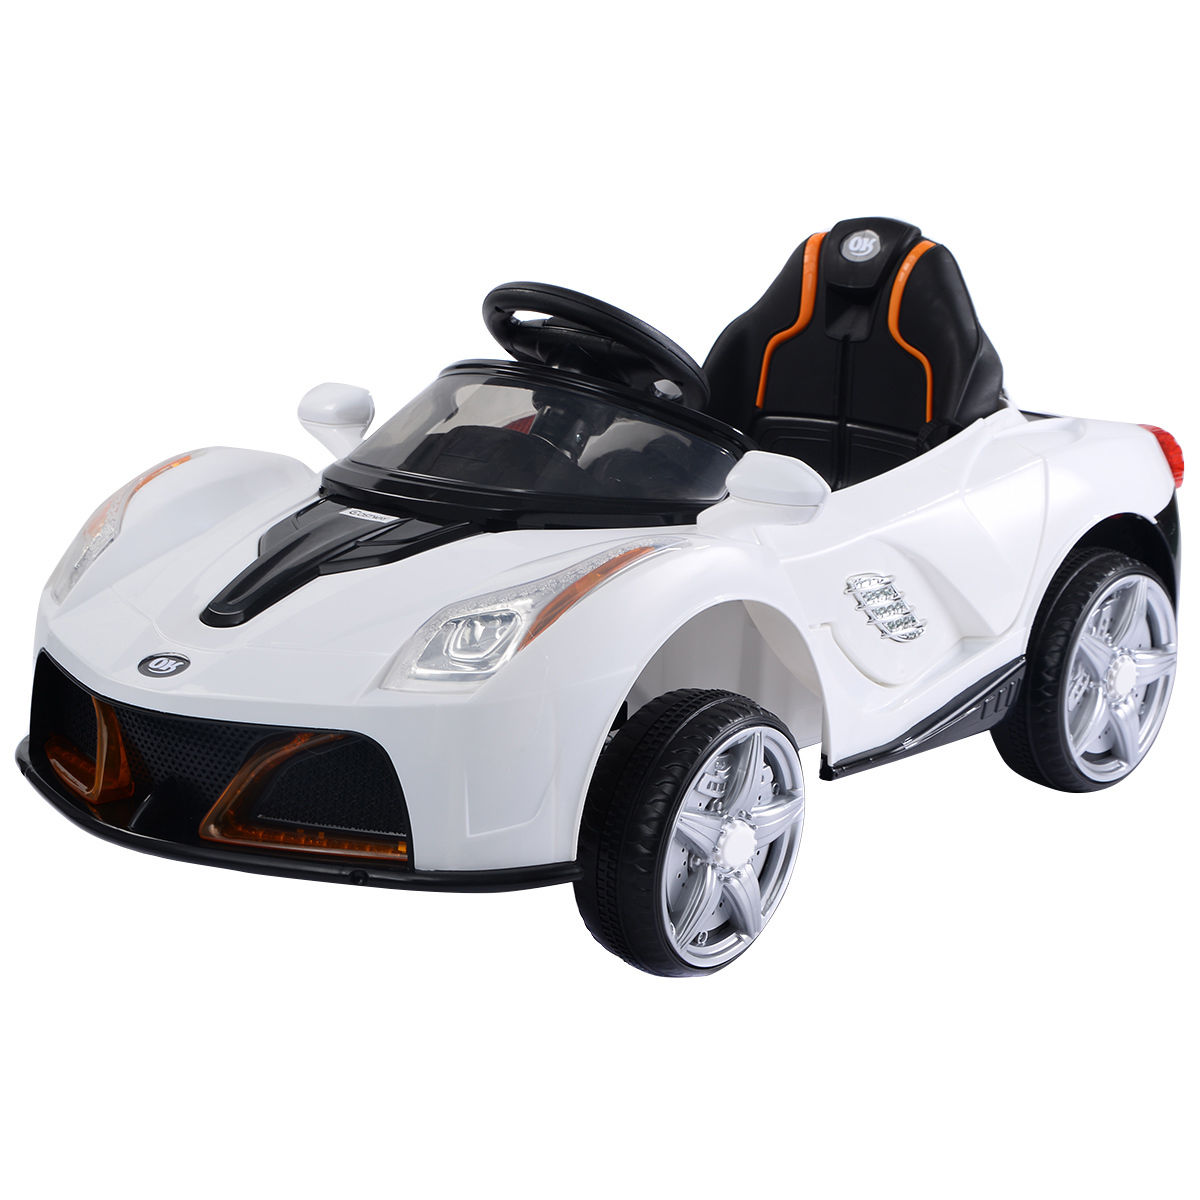 12V Battery Powered Kids Ride On Car RC Remote Control w  LED Lights Music by Costway